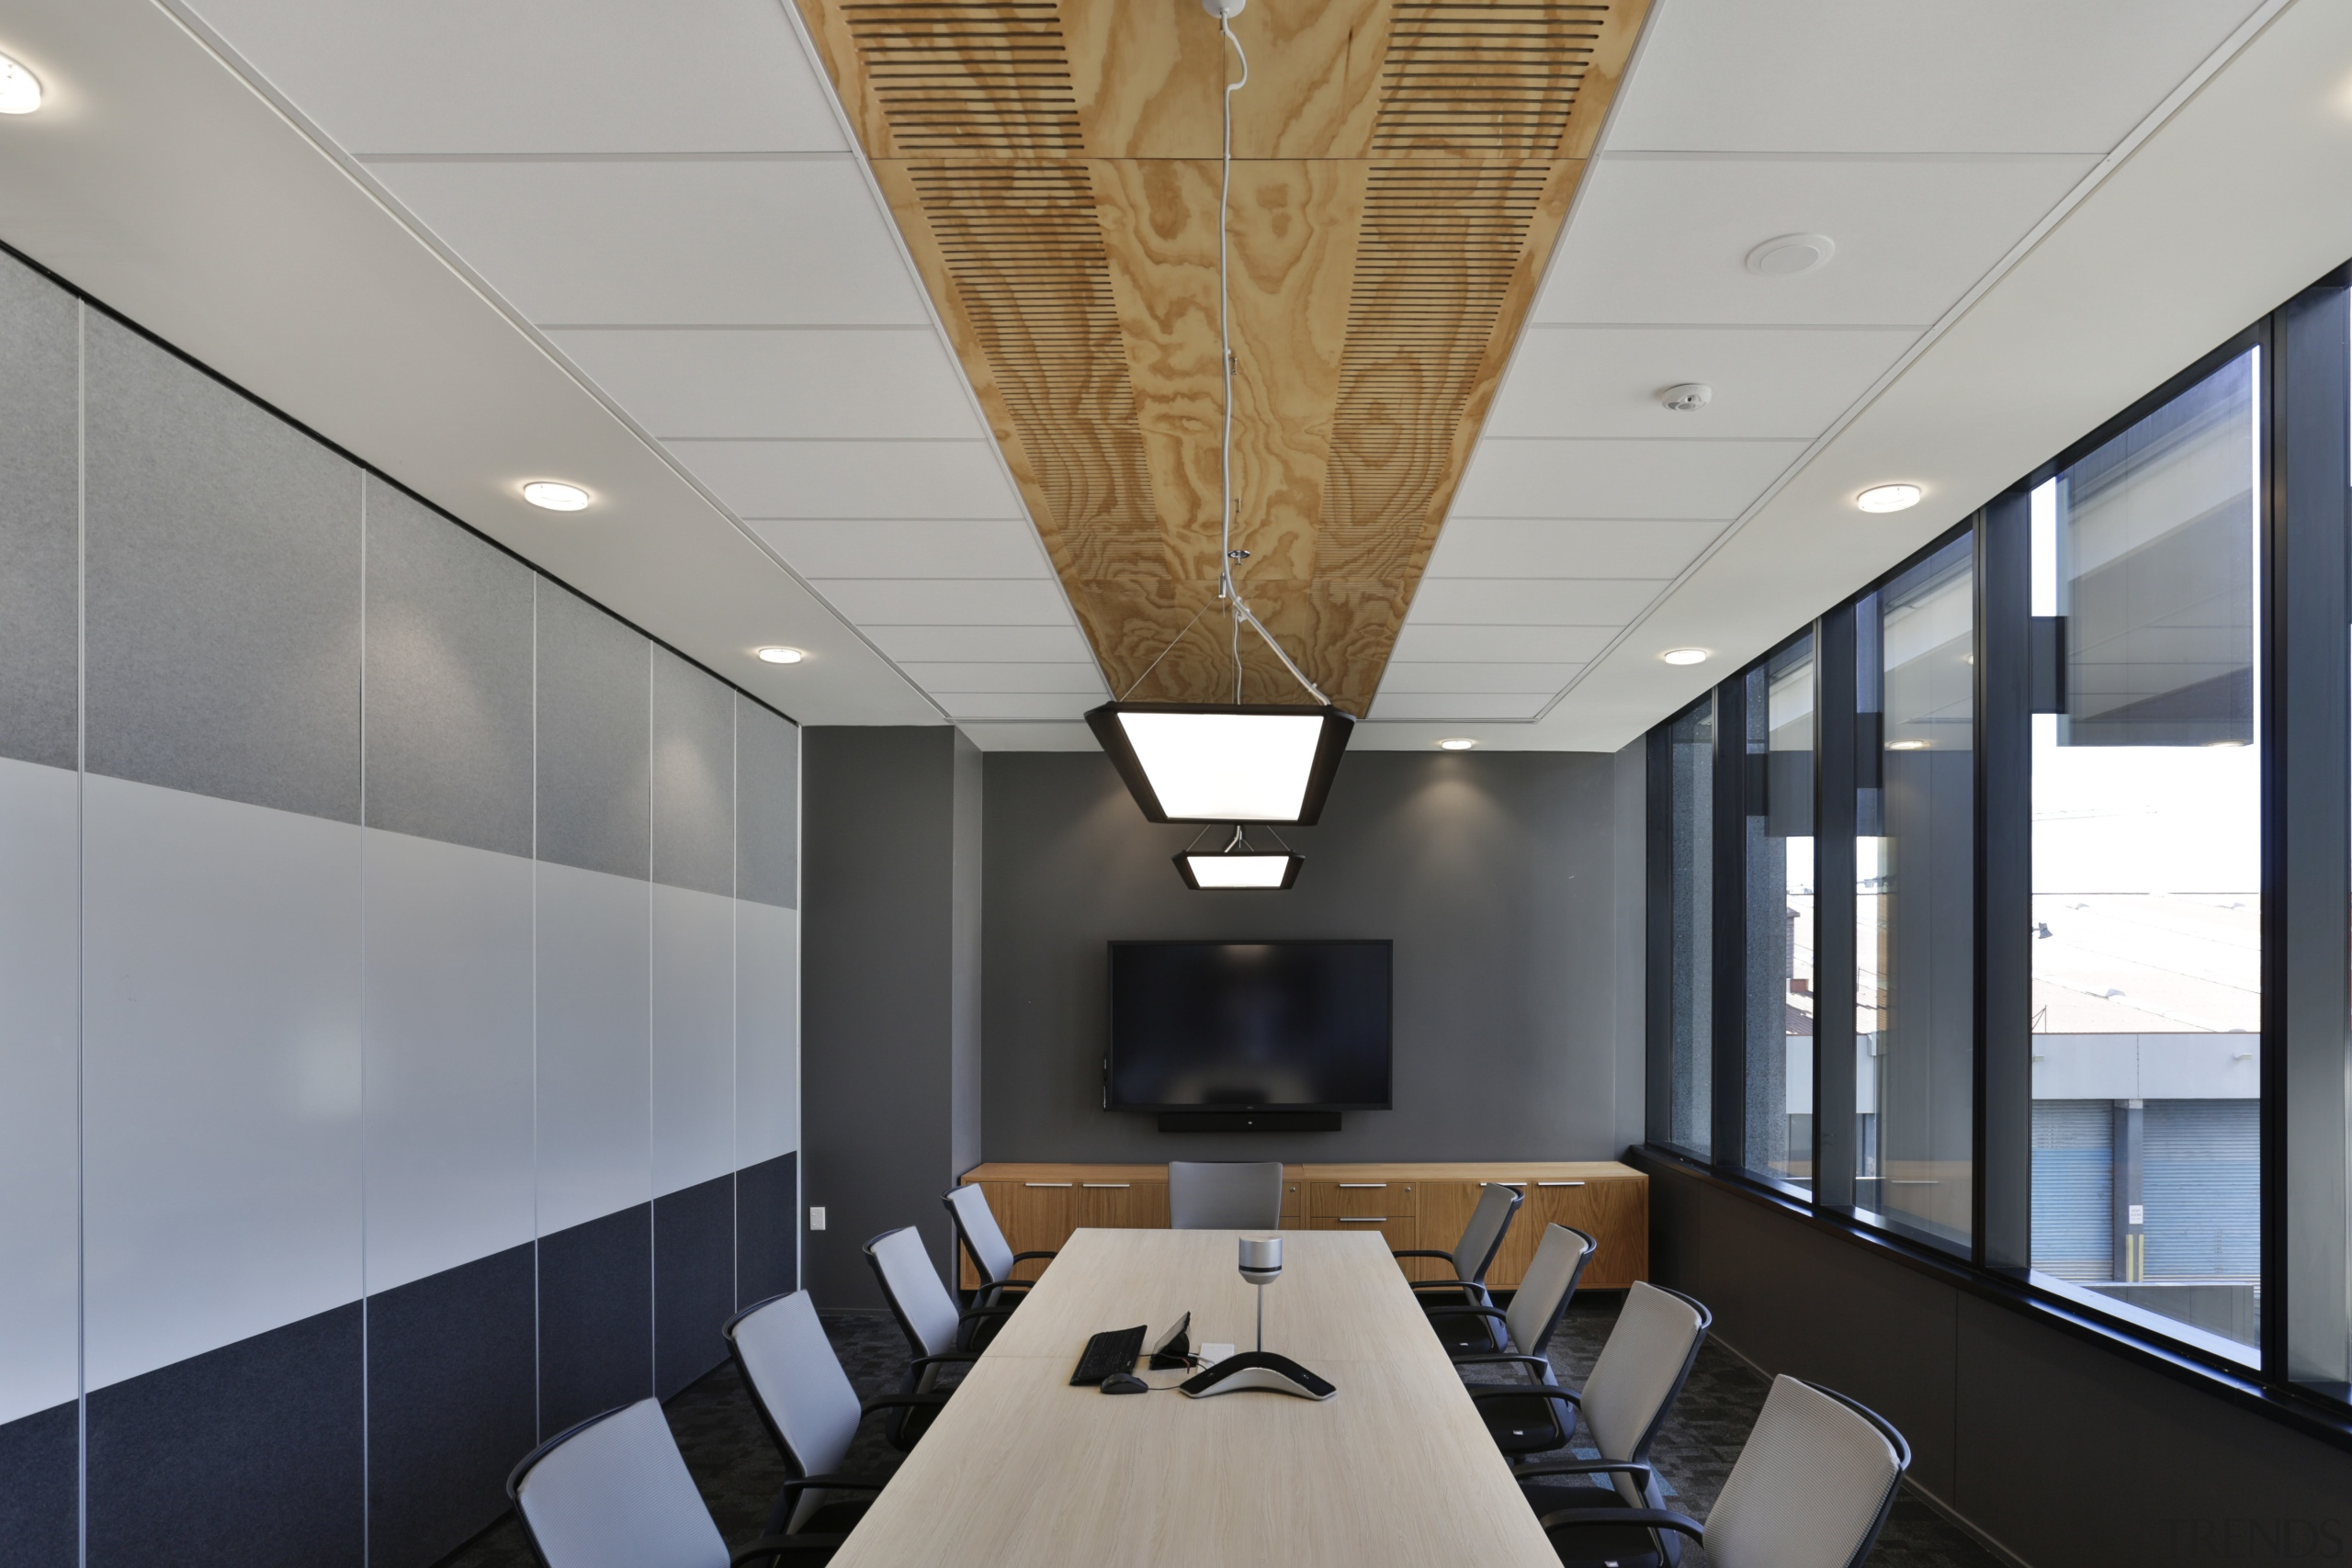 Armstrong Ultima ceiling tiles were used in the architecture, ceiling, conference hall, daylighting, interior design, office, gray